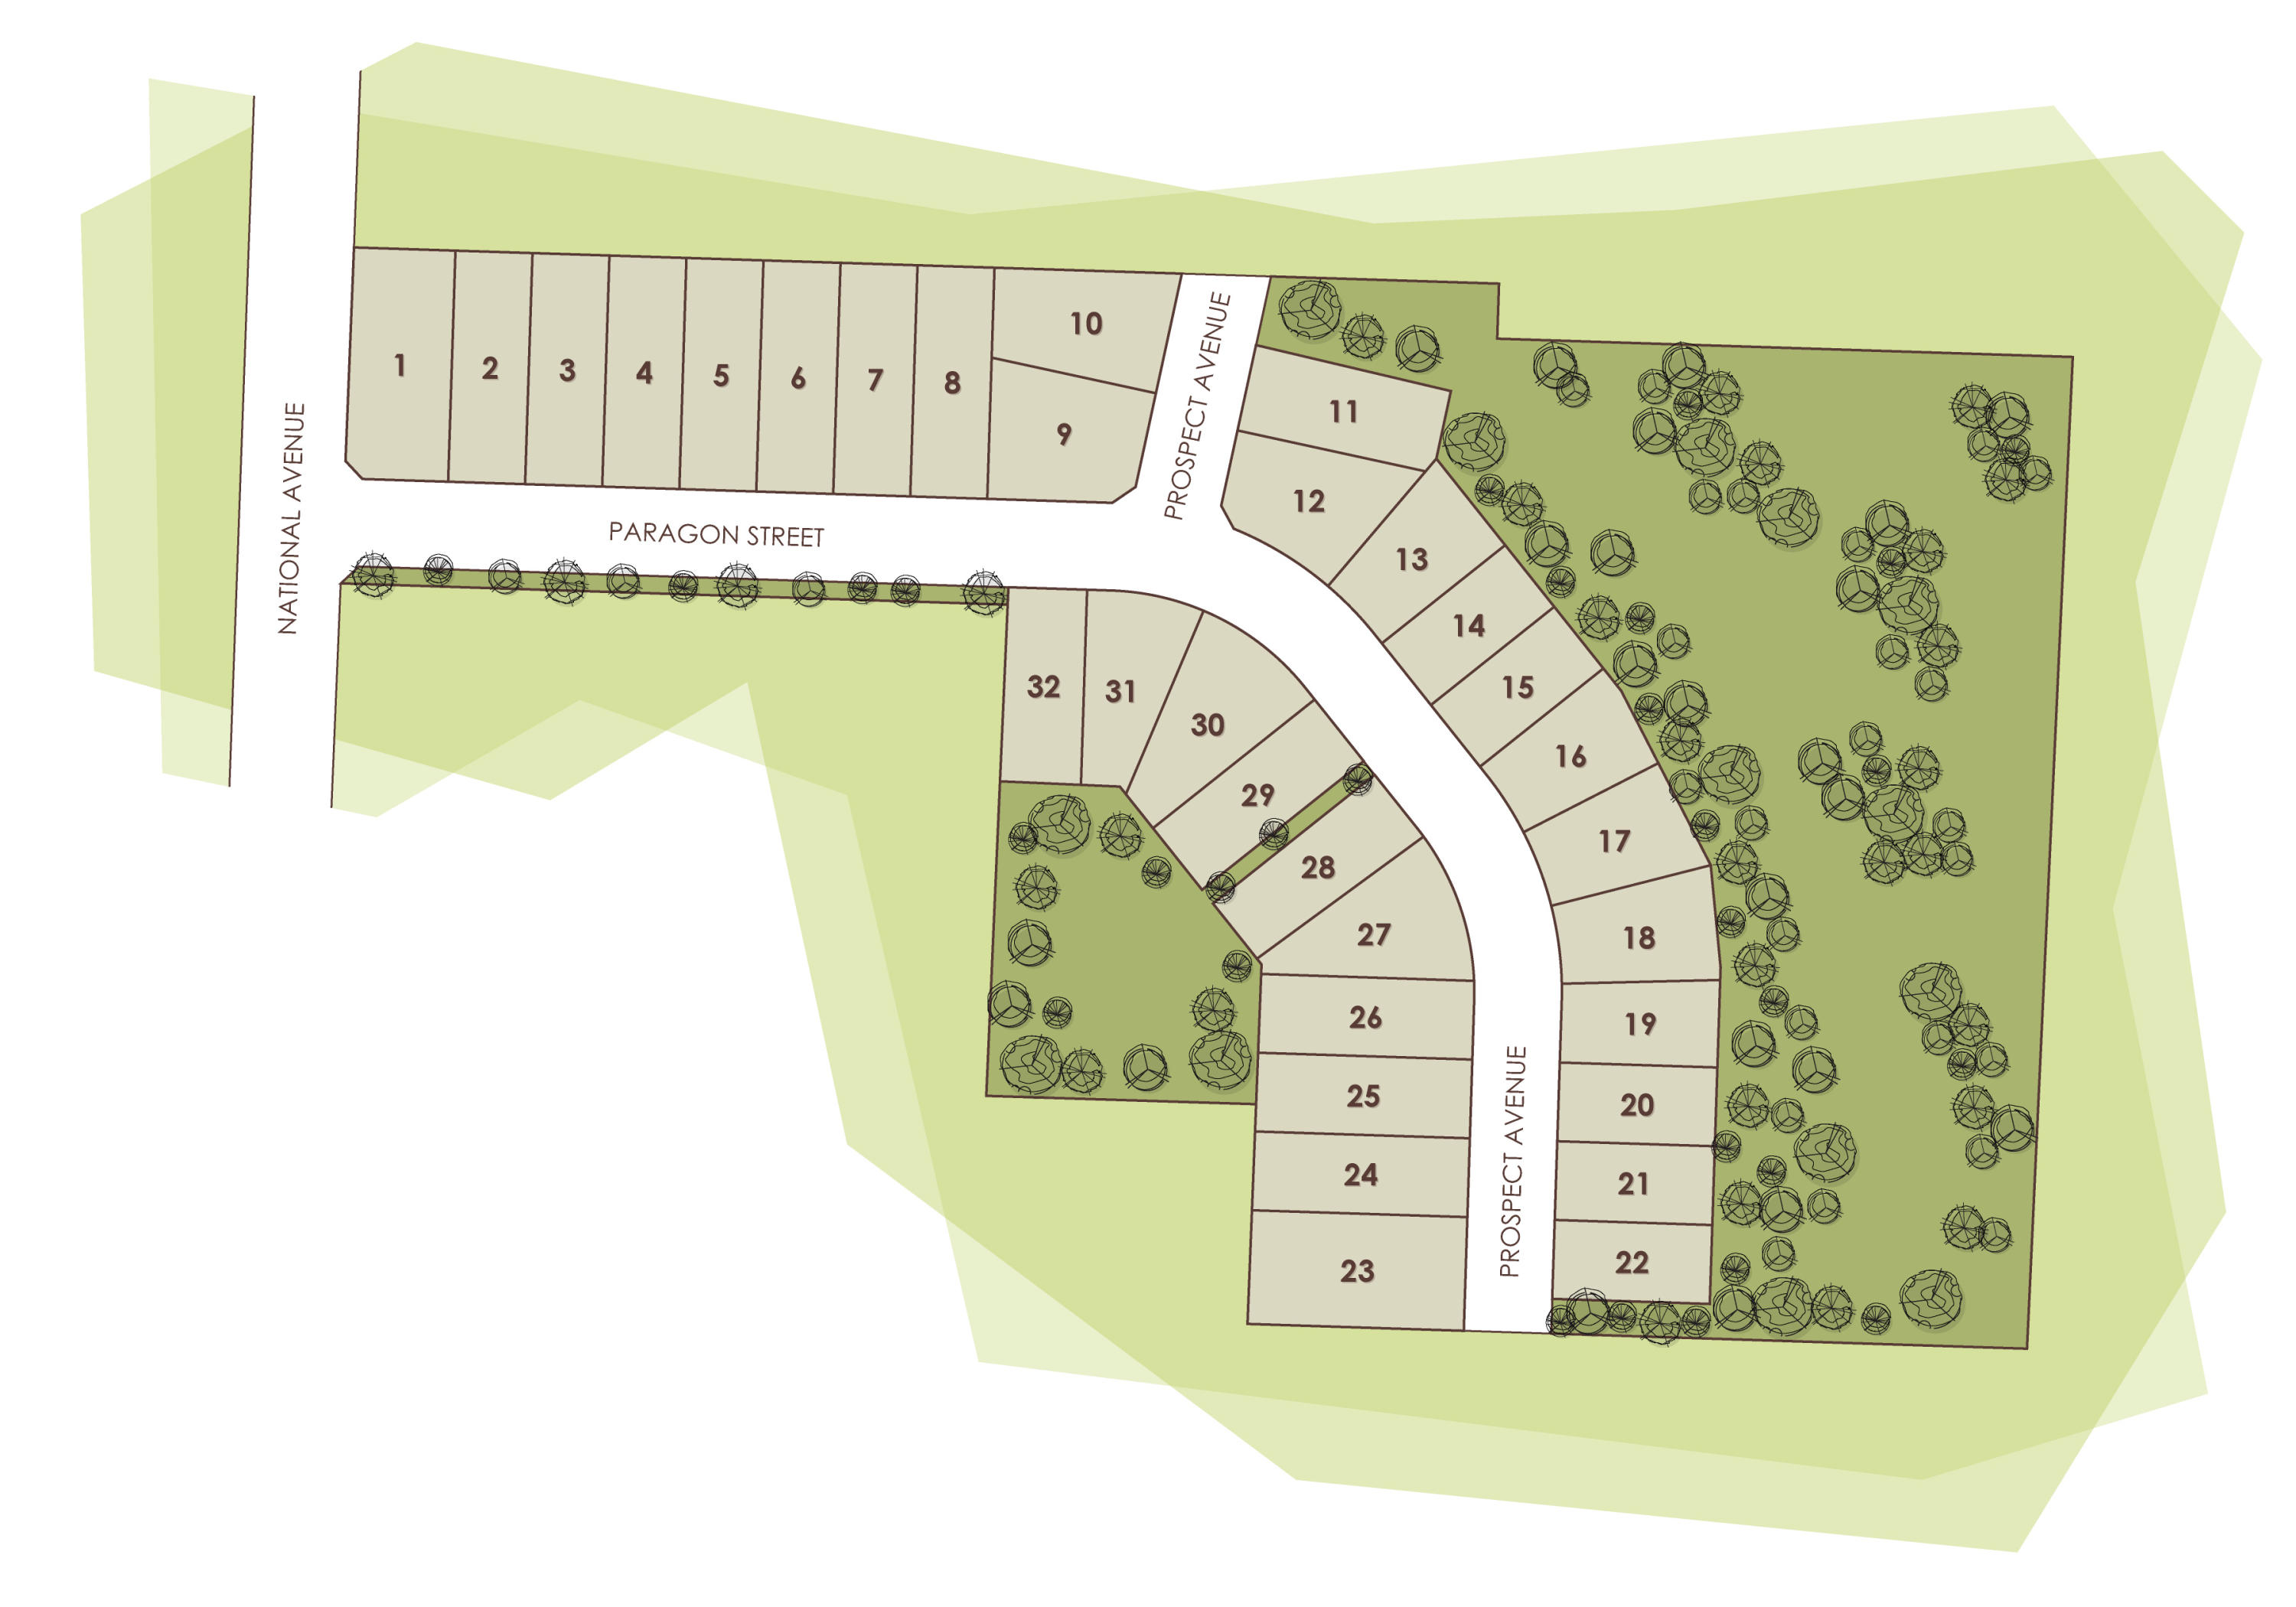 Lot 27-28 Paragon Court Springfield, MO 65803